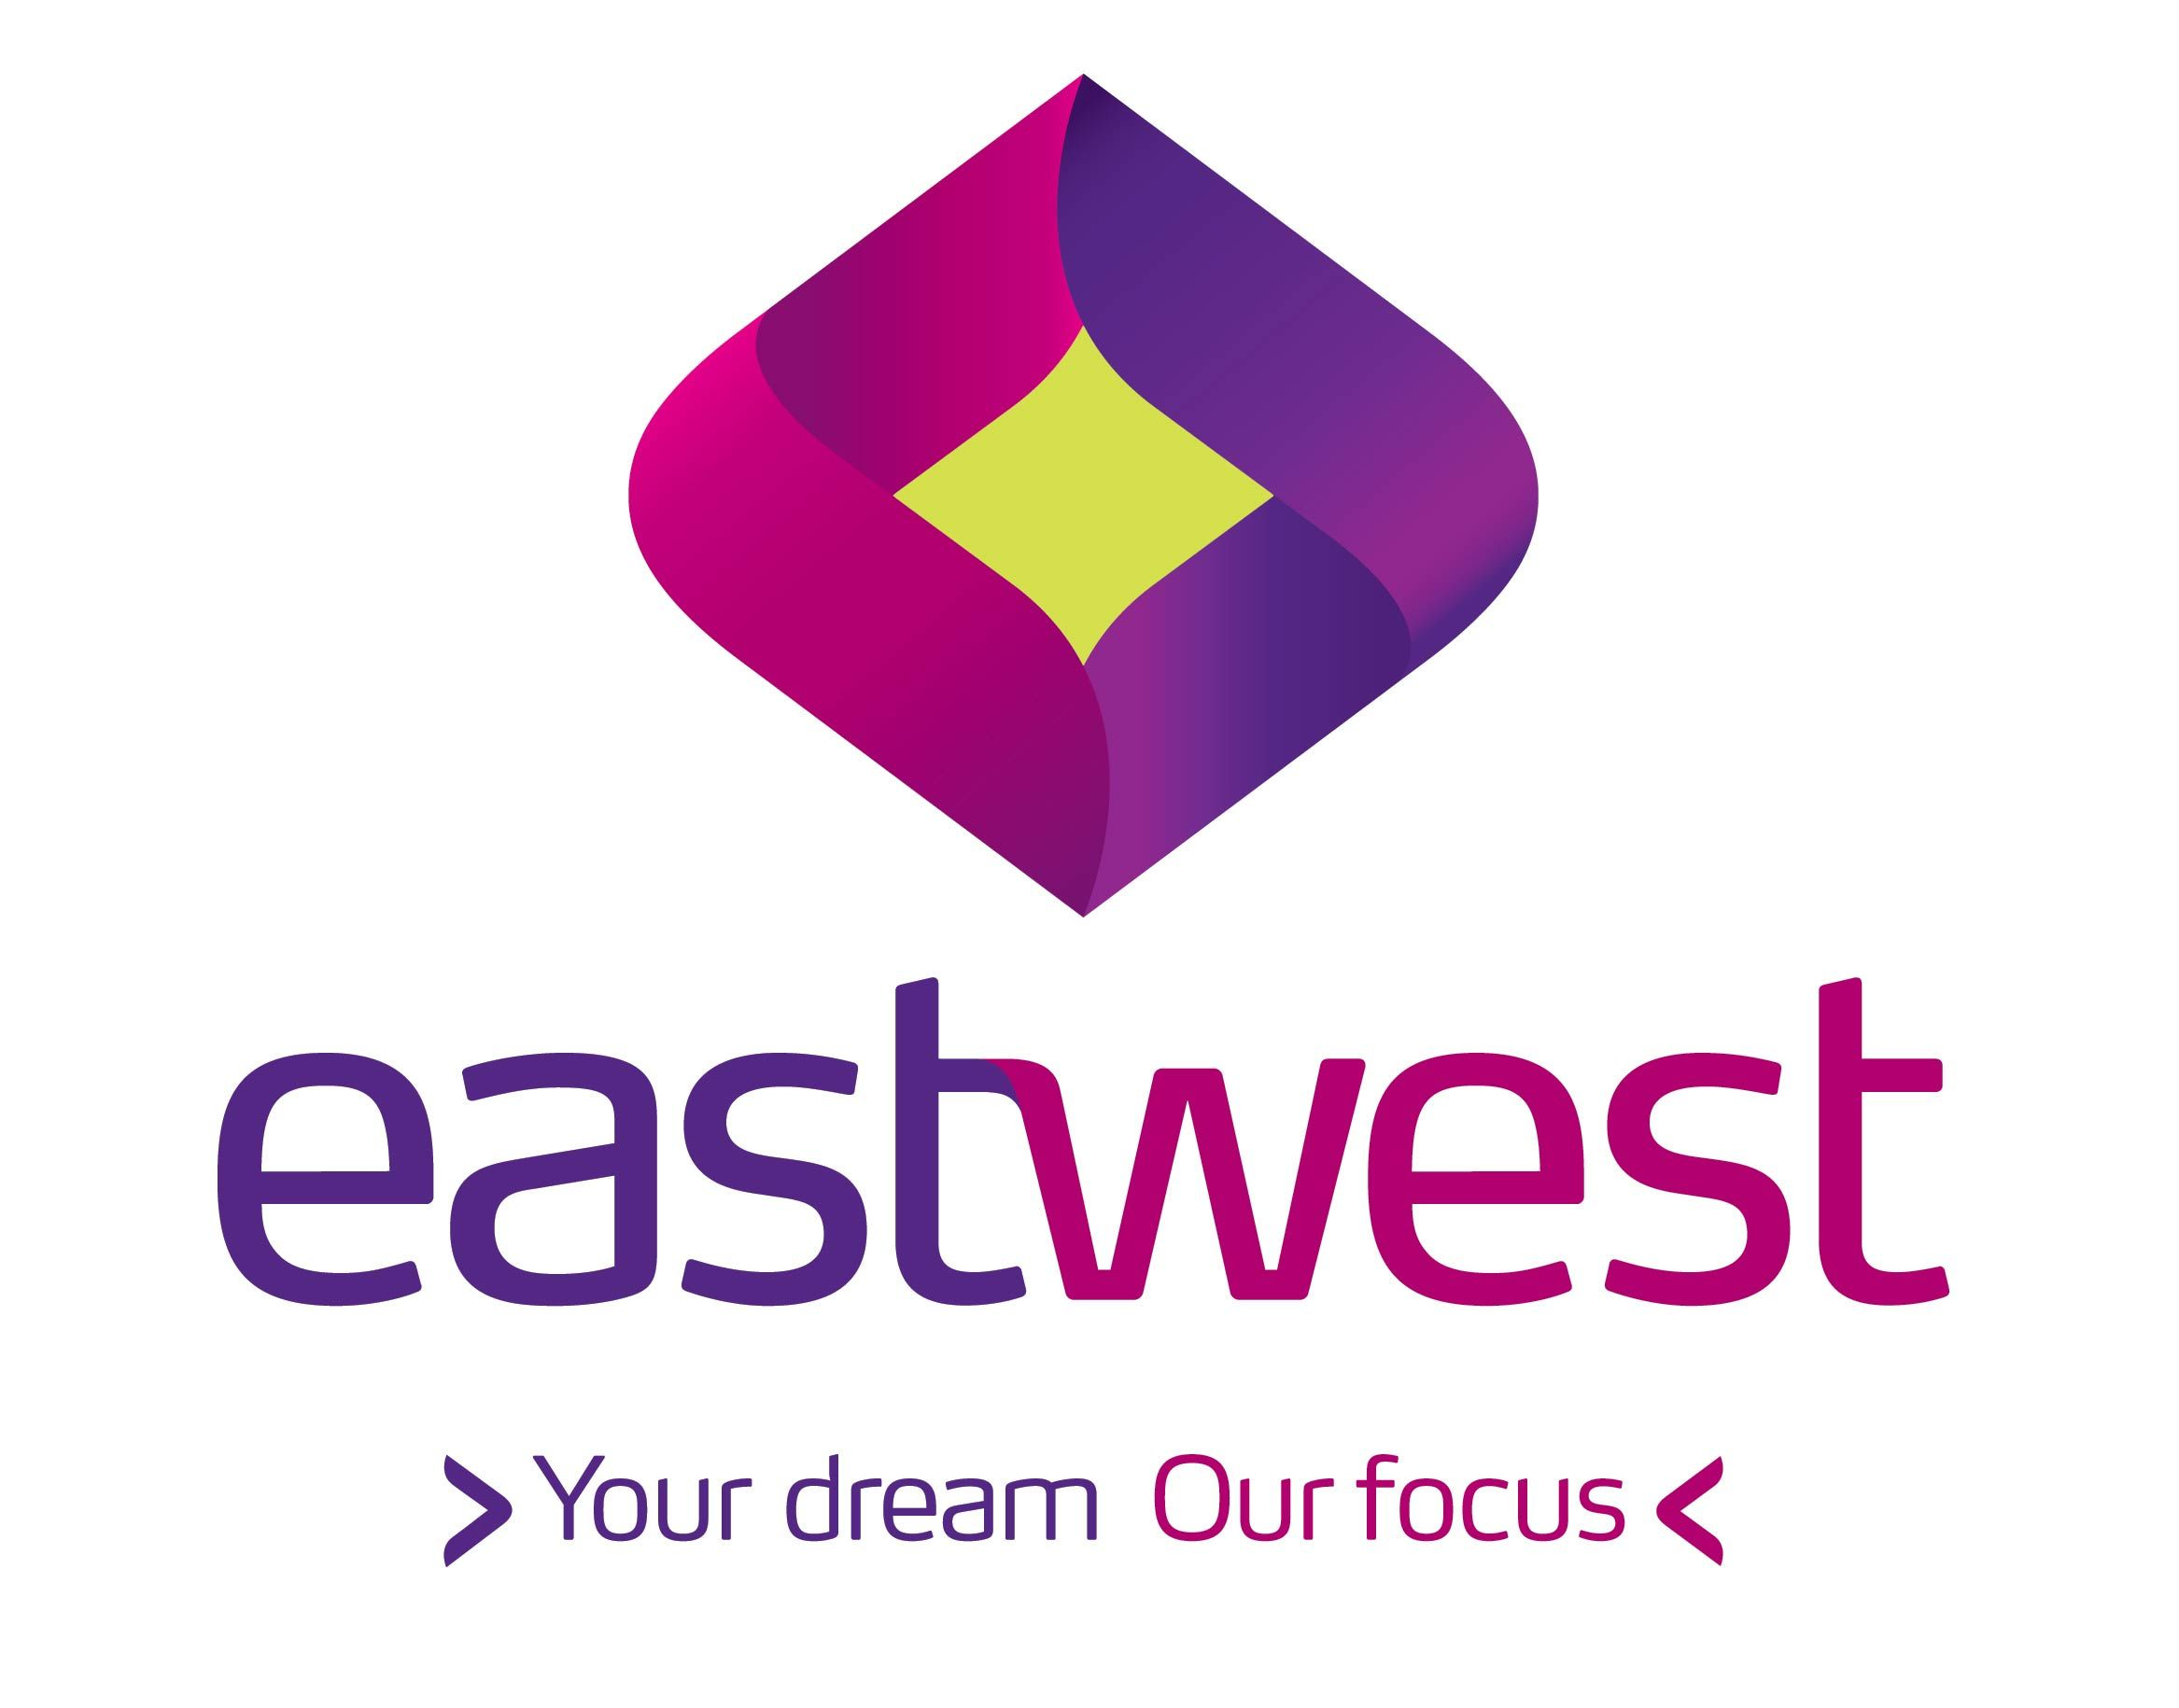 East West Logo Google Search Credit Card Services Cagayan De Oro Online Business